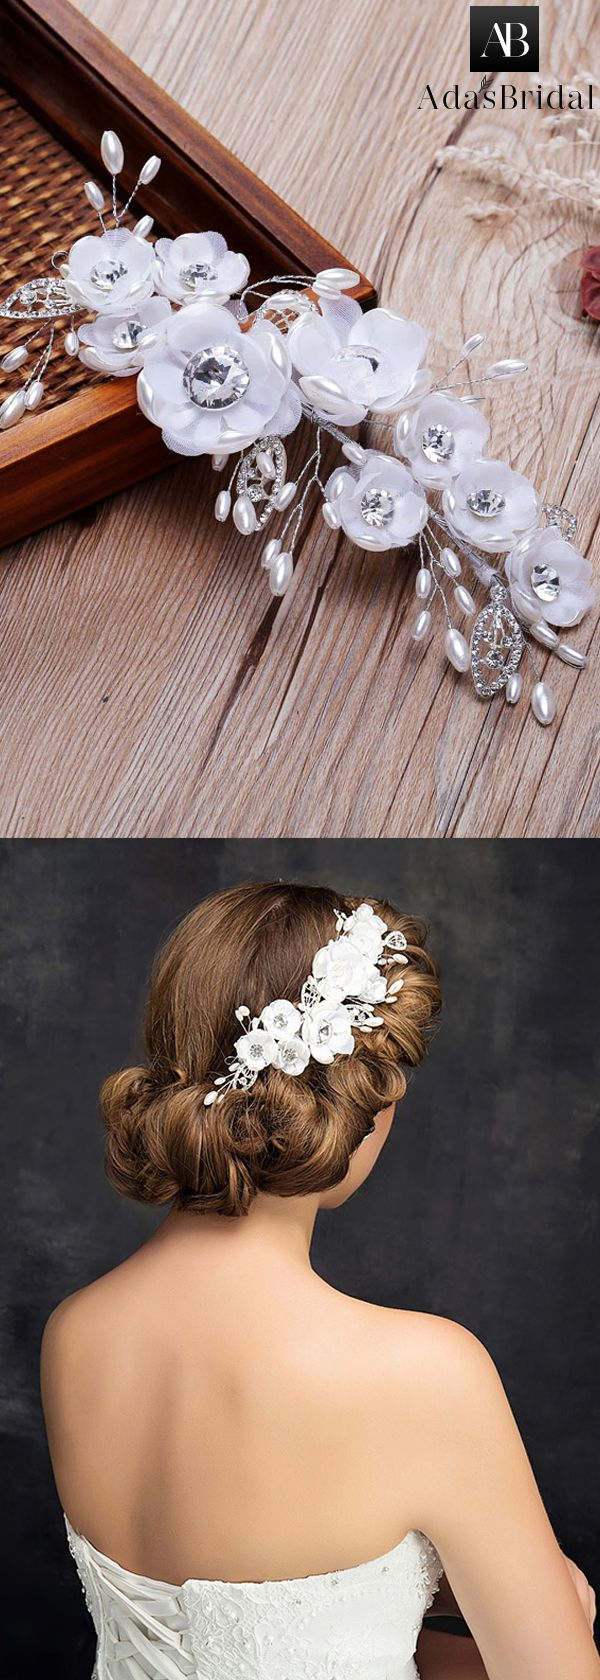 Graceful Alloy Wedding Hair Ornaments With Pearls & Flowers